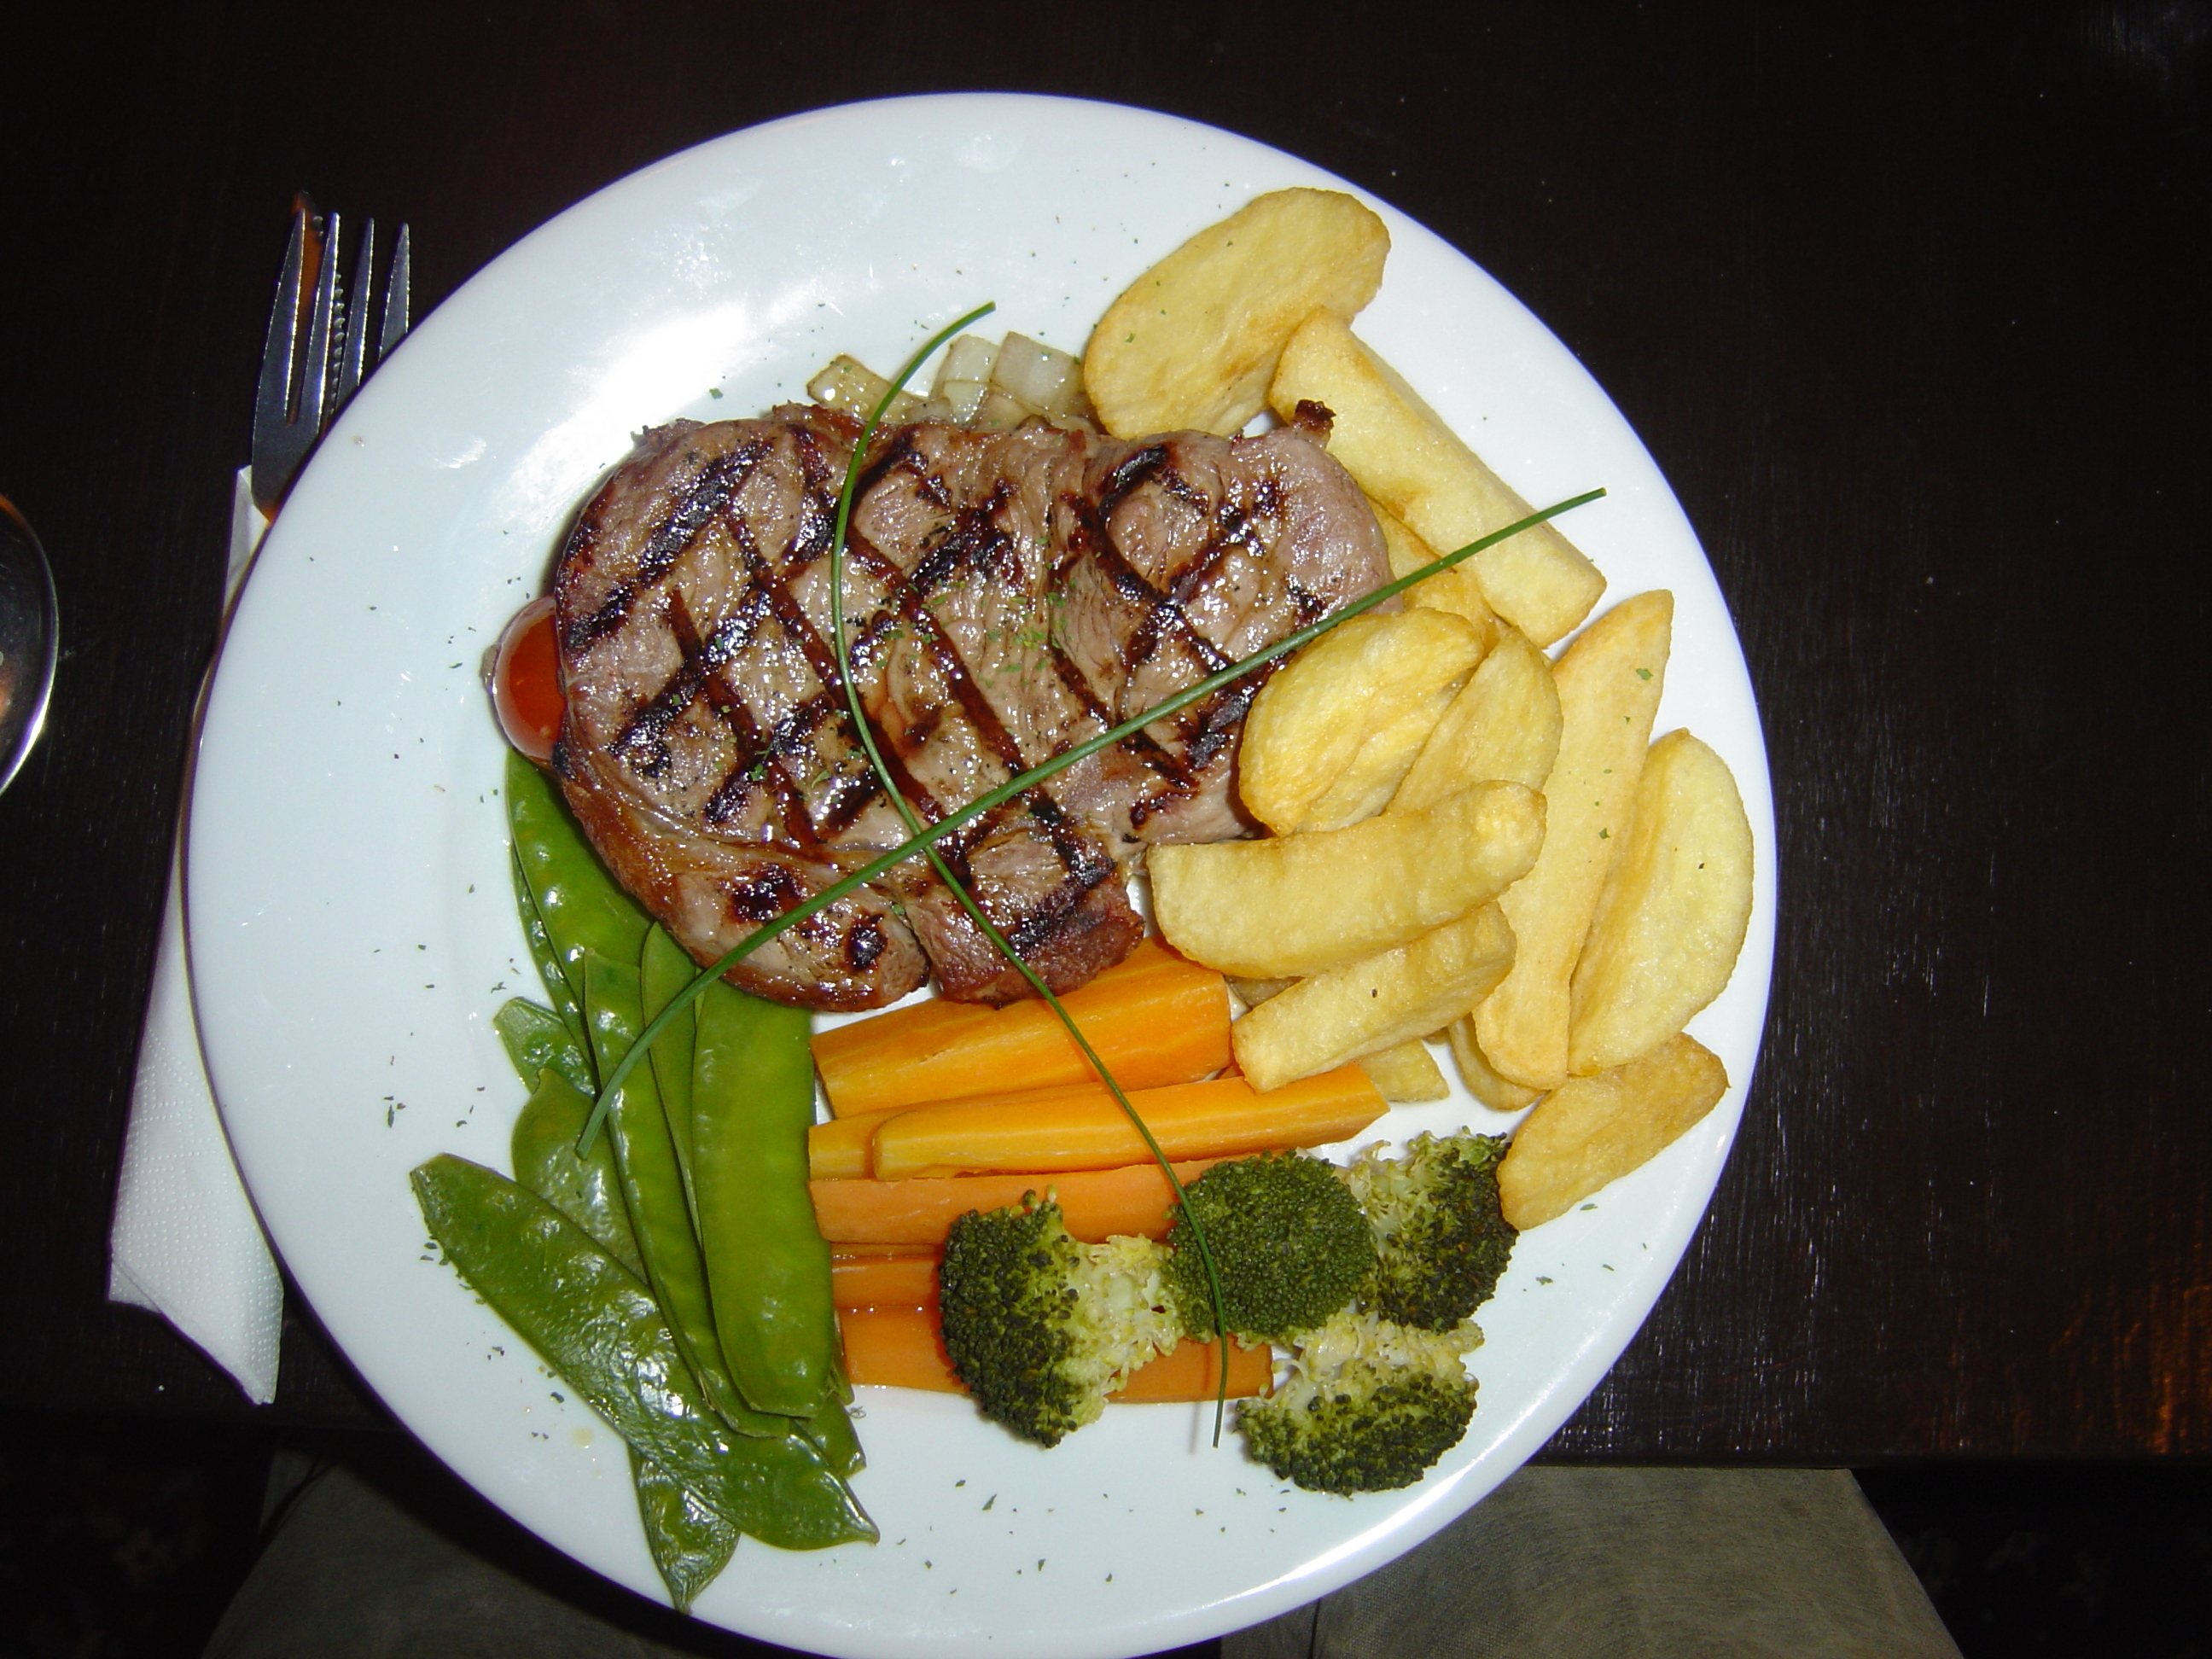 Sirloin steak for American style cuisine